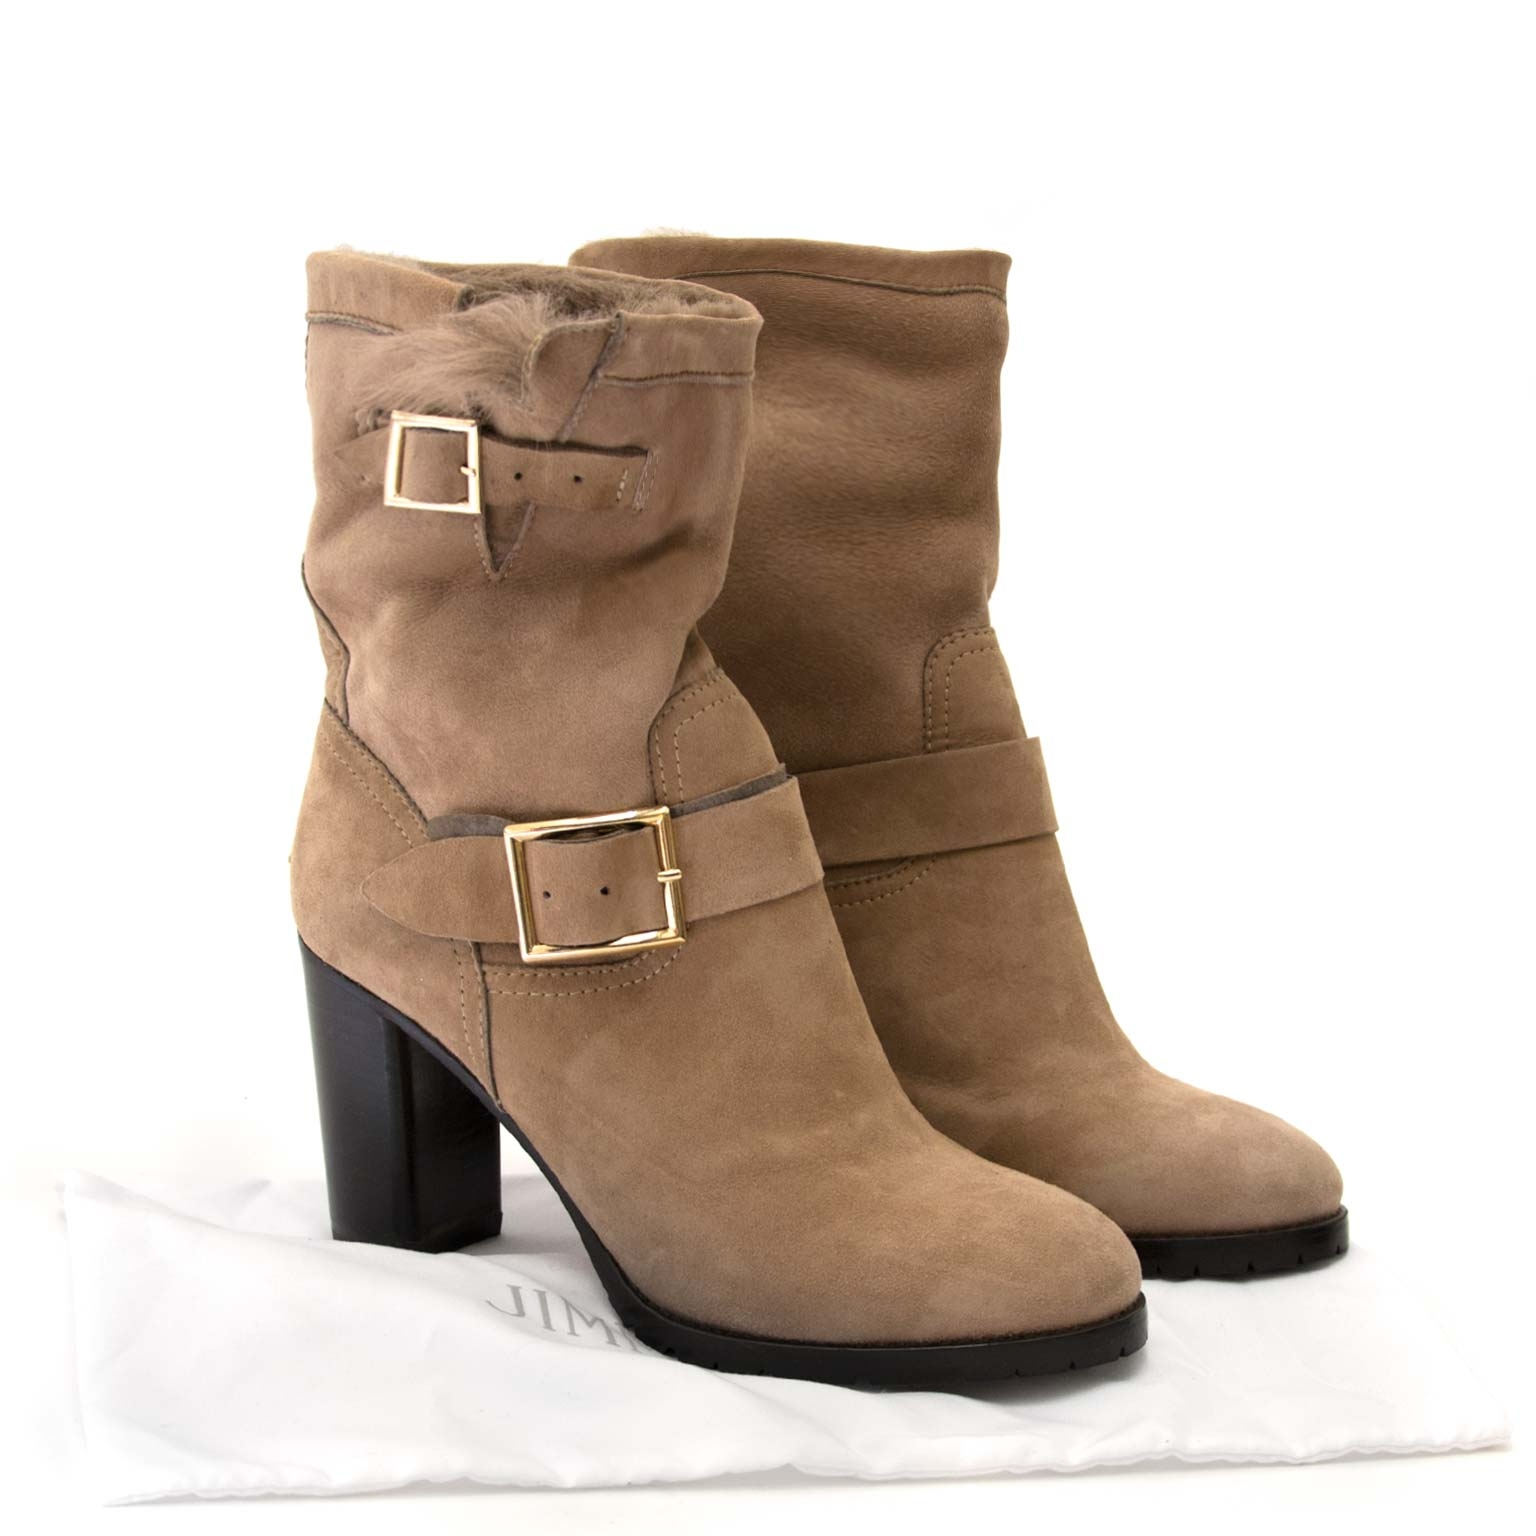 jimmy choo heeled dart shearling suede boots now for sale at labellov vintage fashion webshop belgium